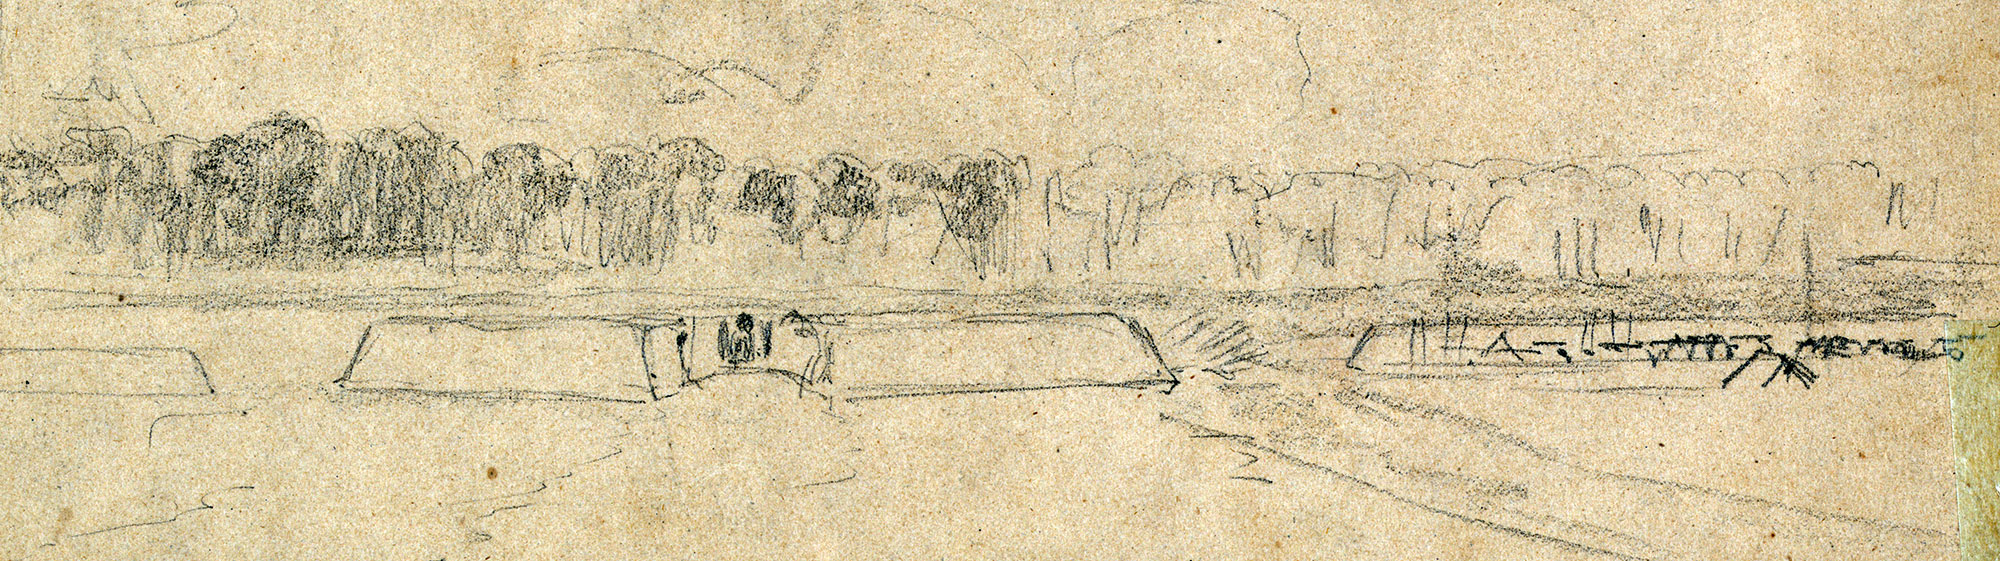 William Waud produced this sketch of Casey's Redoubt within 48 hours after the battle.                                                                                                                                                                                                                       Library of Congress.